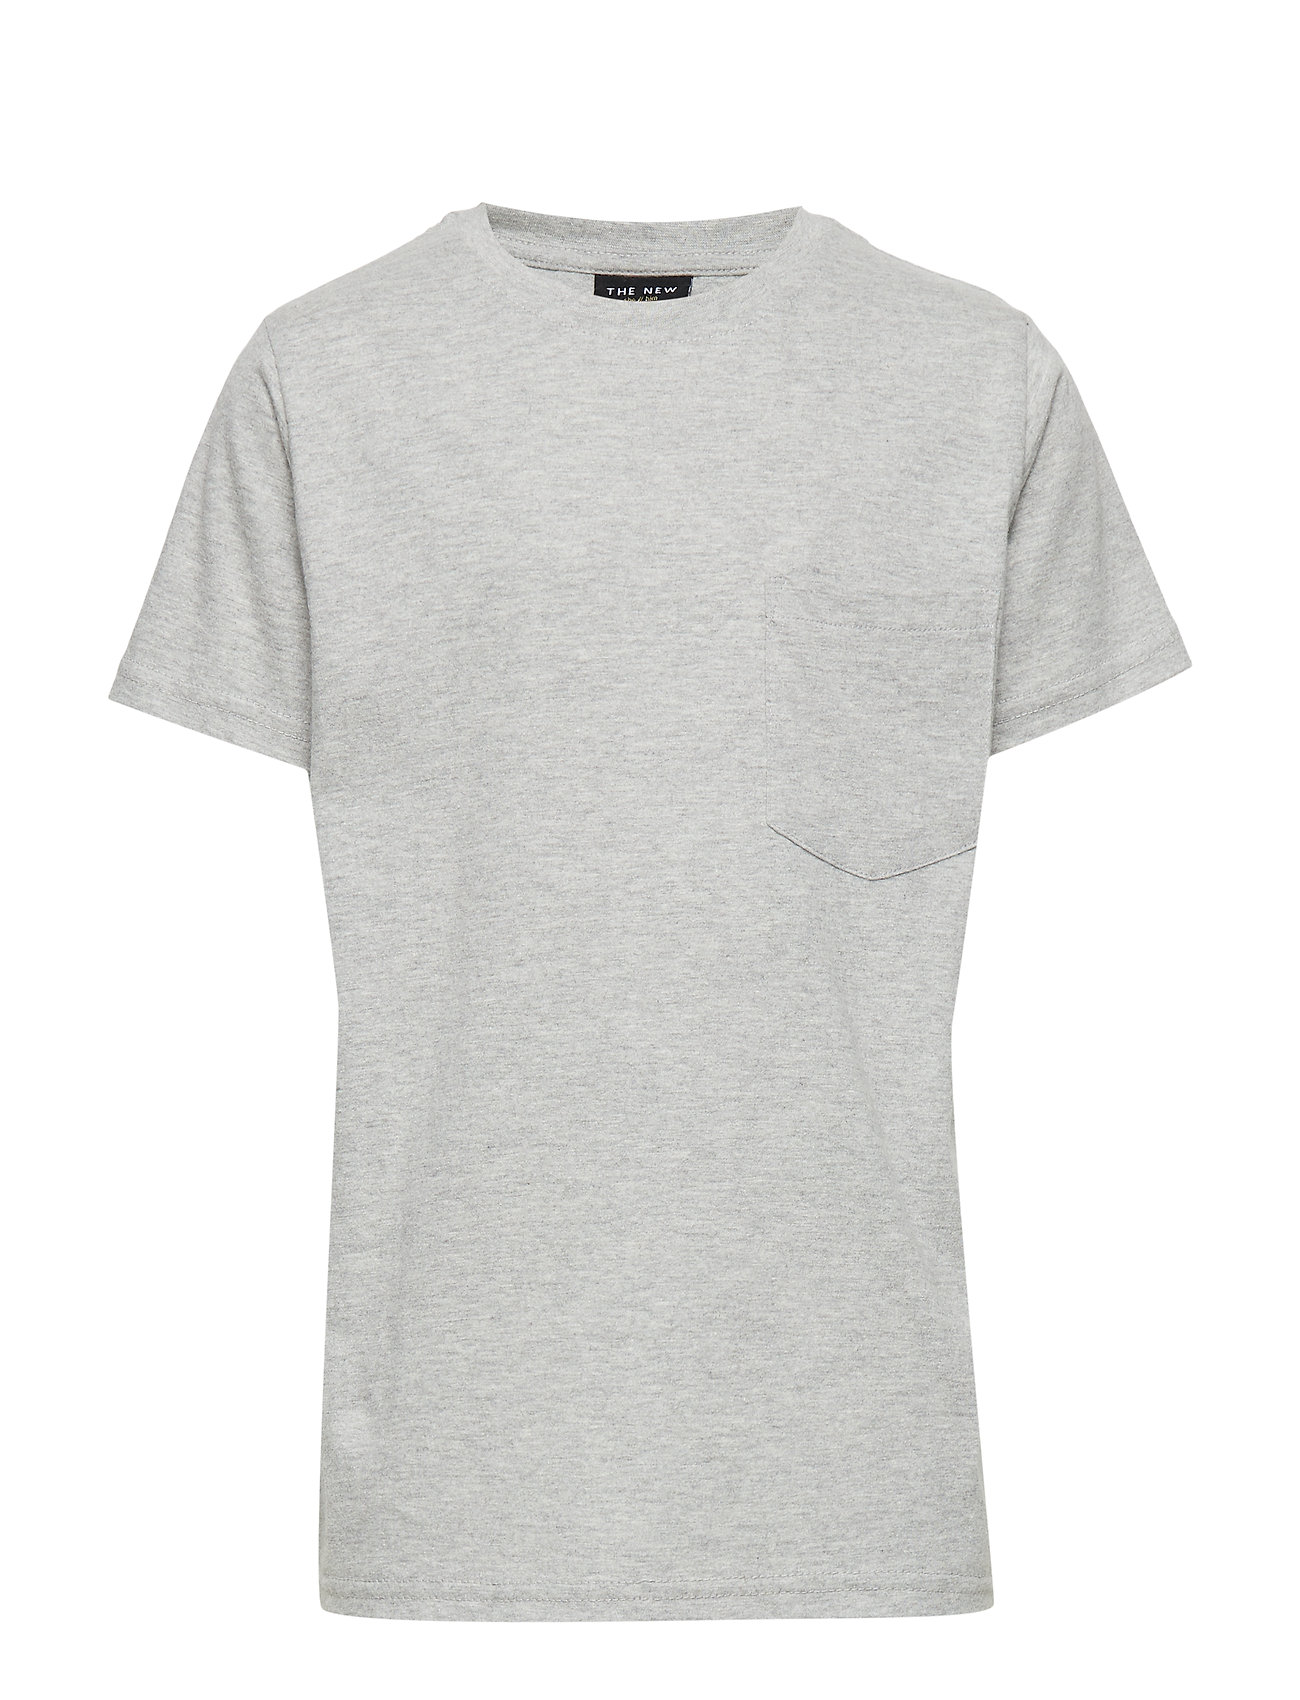 The New THE NEW ECO S_S TEE - LIGHT GREY MELANGE